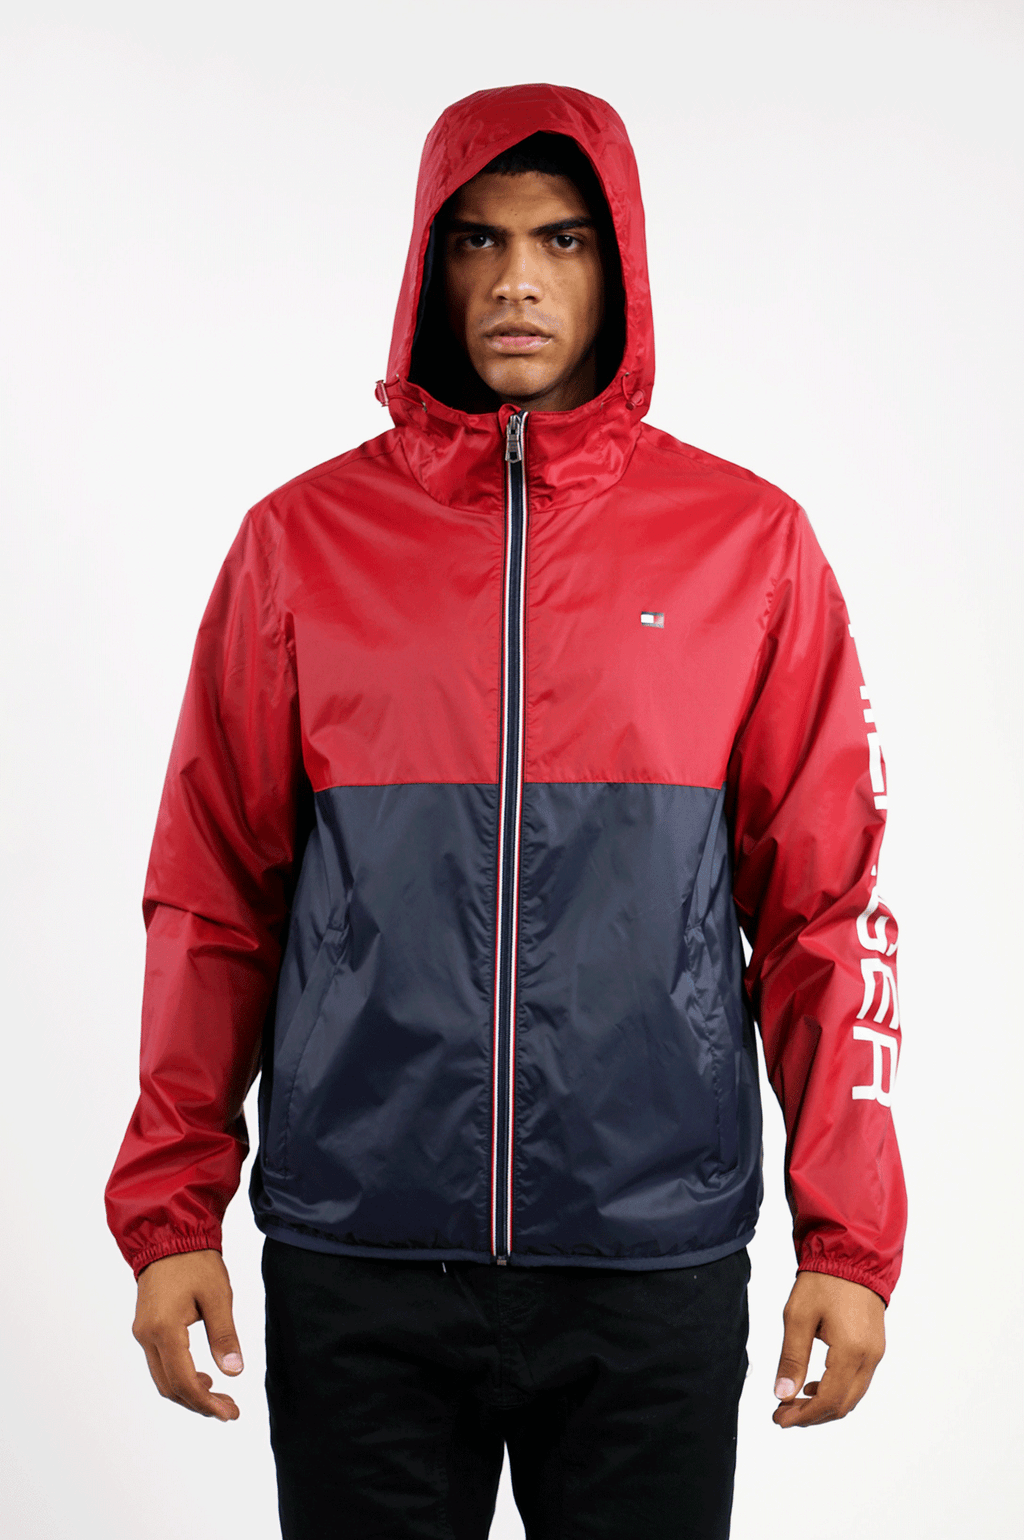 TOMMY HILFIGER OUTERWEAR MENS COLORBLOCK WINDBREAKER